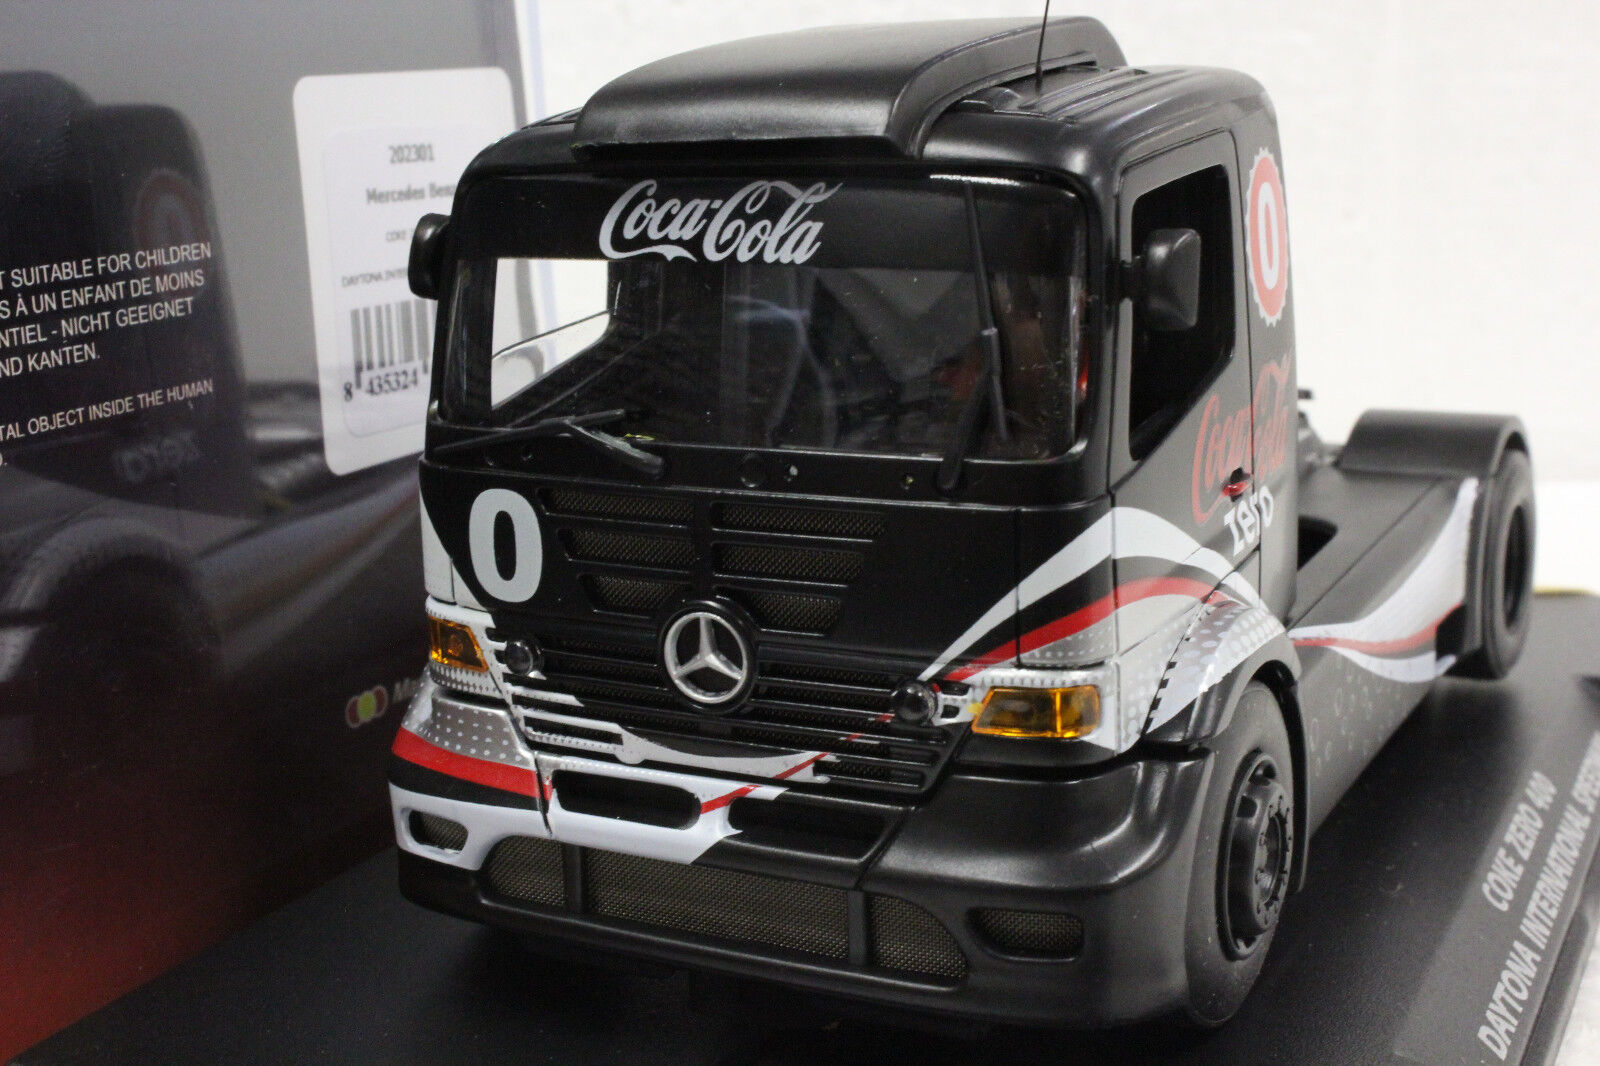 Fly 202301 Mercedes Benz COCA COLA COKE ZERO DAYTONA New 1 32 Slot Car avec affichage